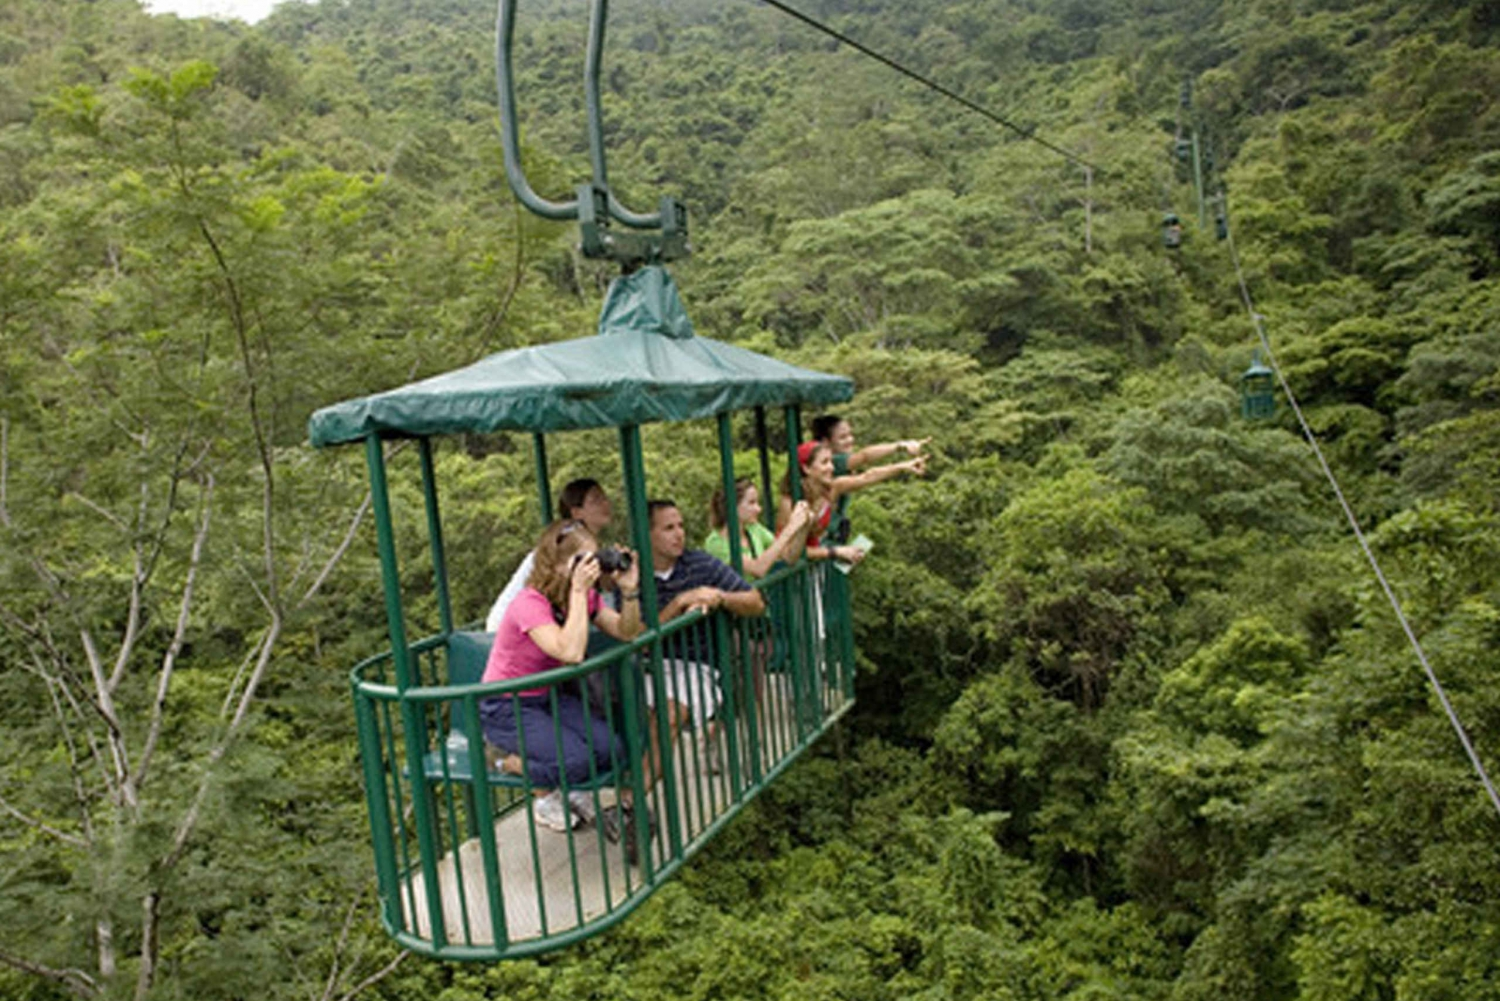 Rainforest Adventures Costa Rica Pacific Aerial Tram